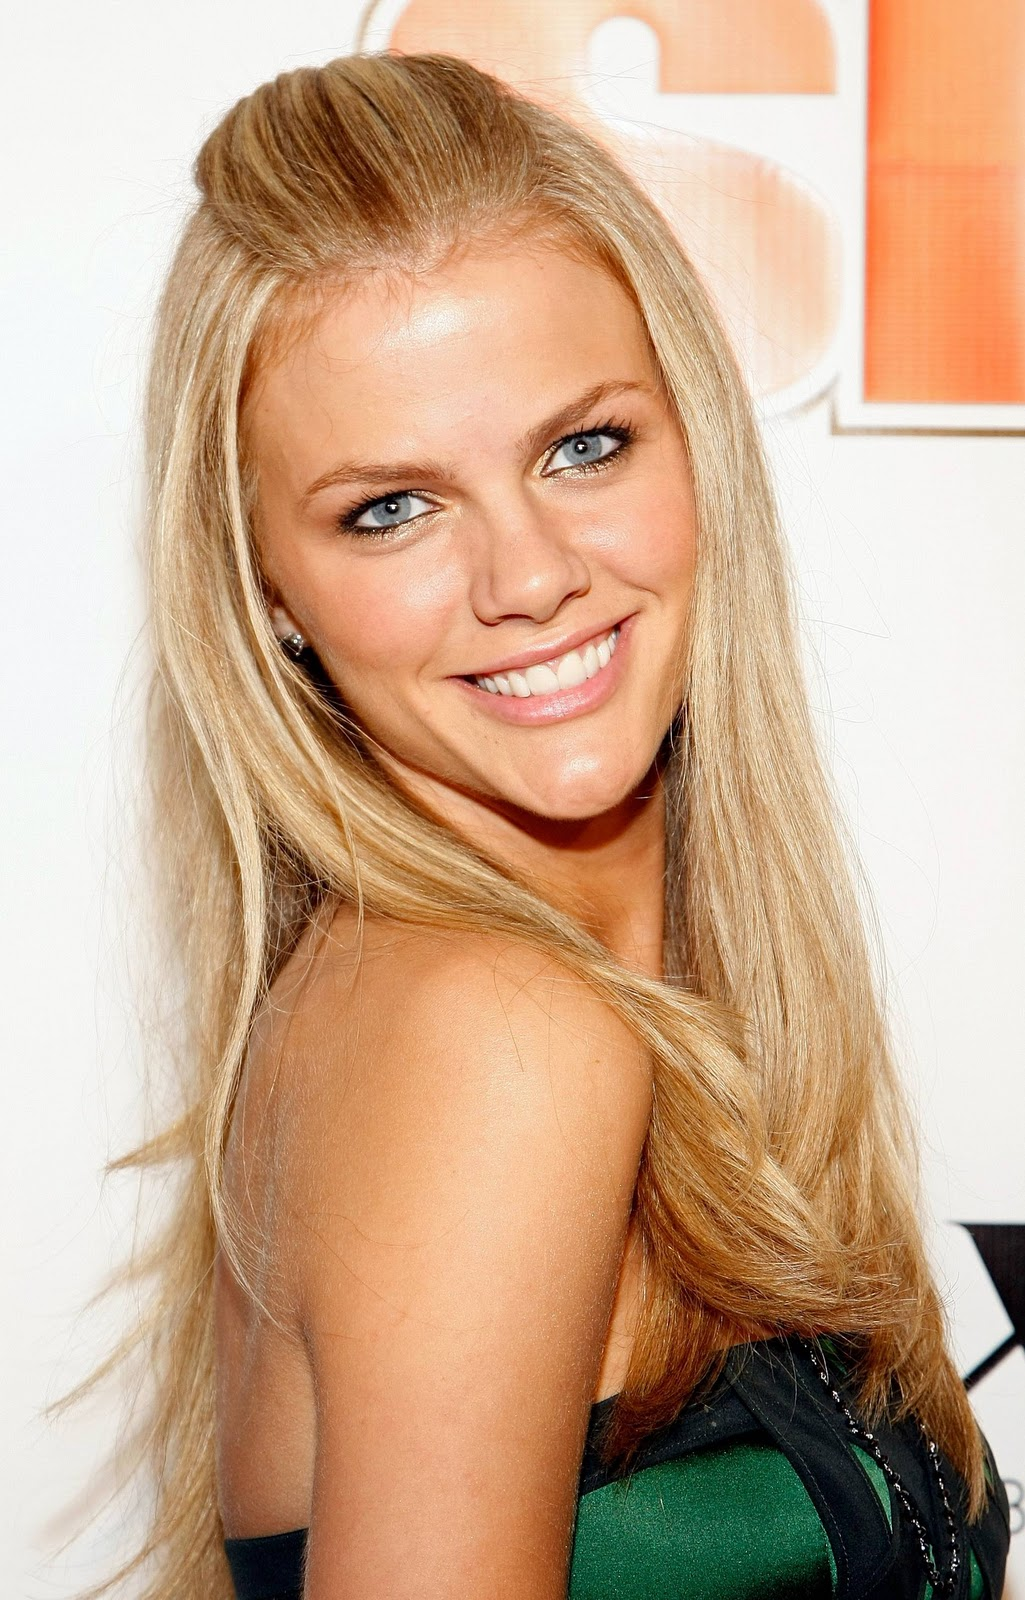 super model brooklyn decker full biography hot sexy